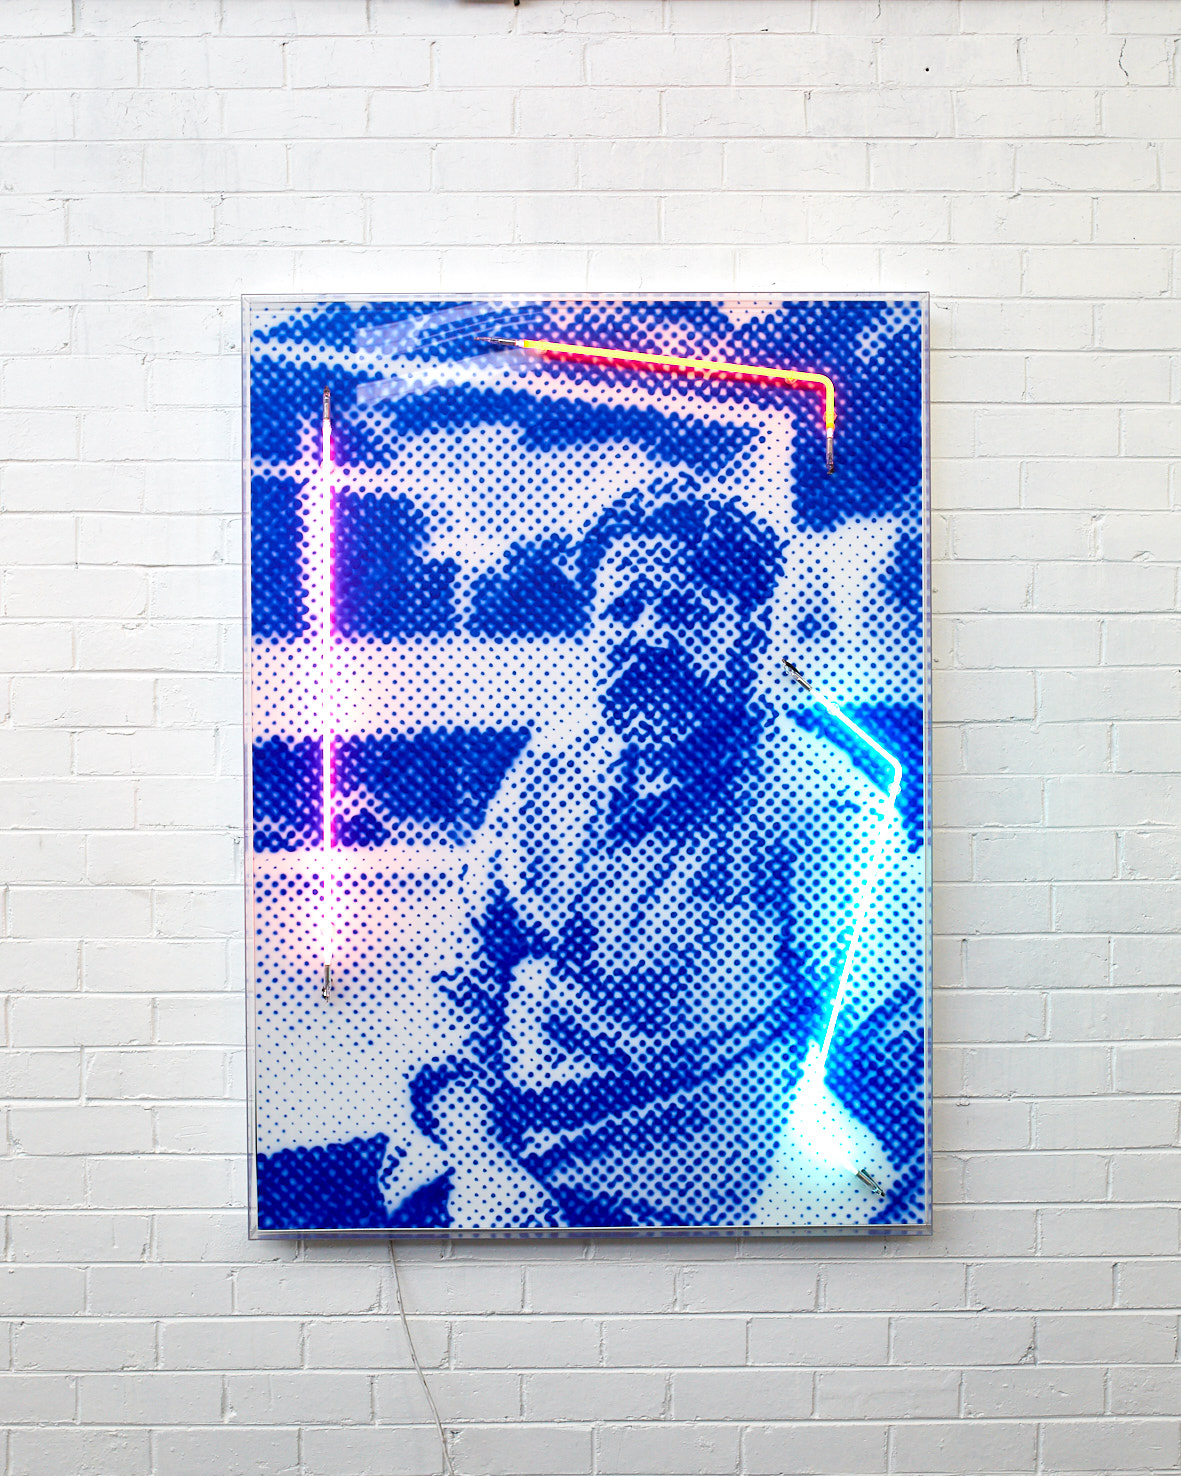 At Hom (Tim Ross), 2019  Airbrush polymer and neon on Dibond, Acrylic frame 105x145cm